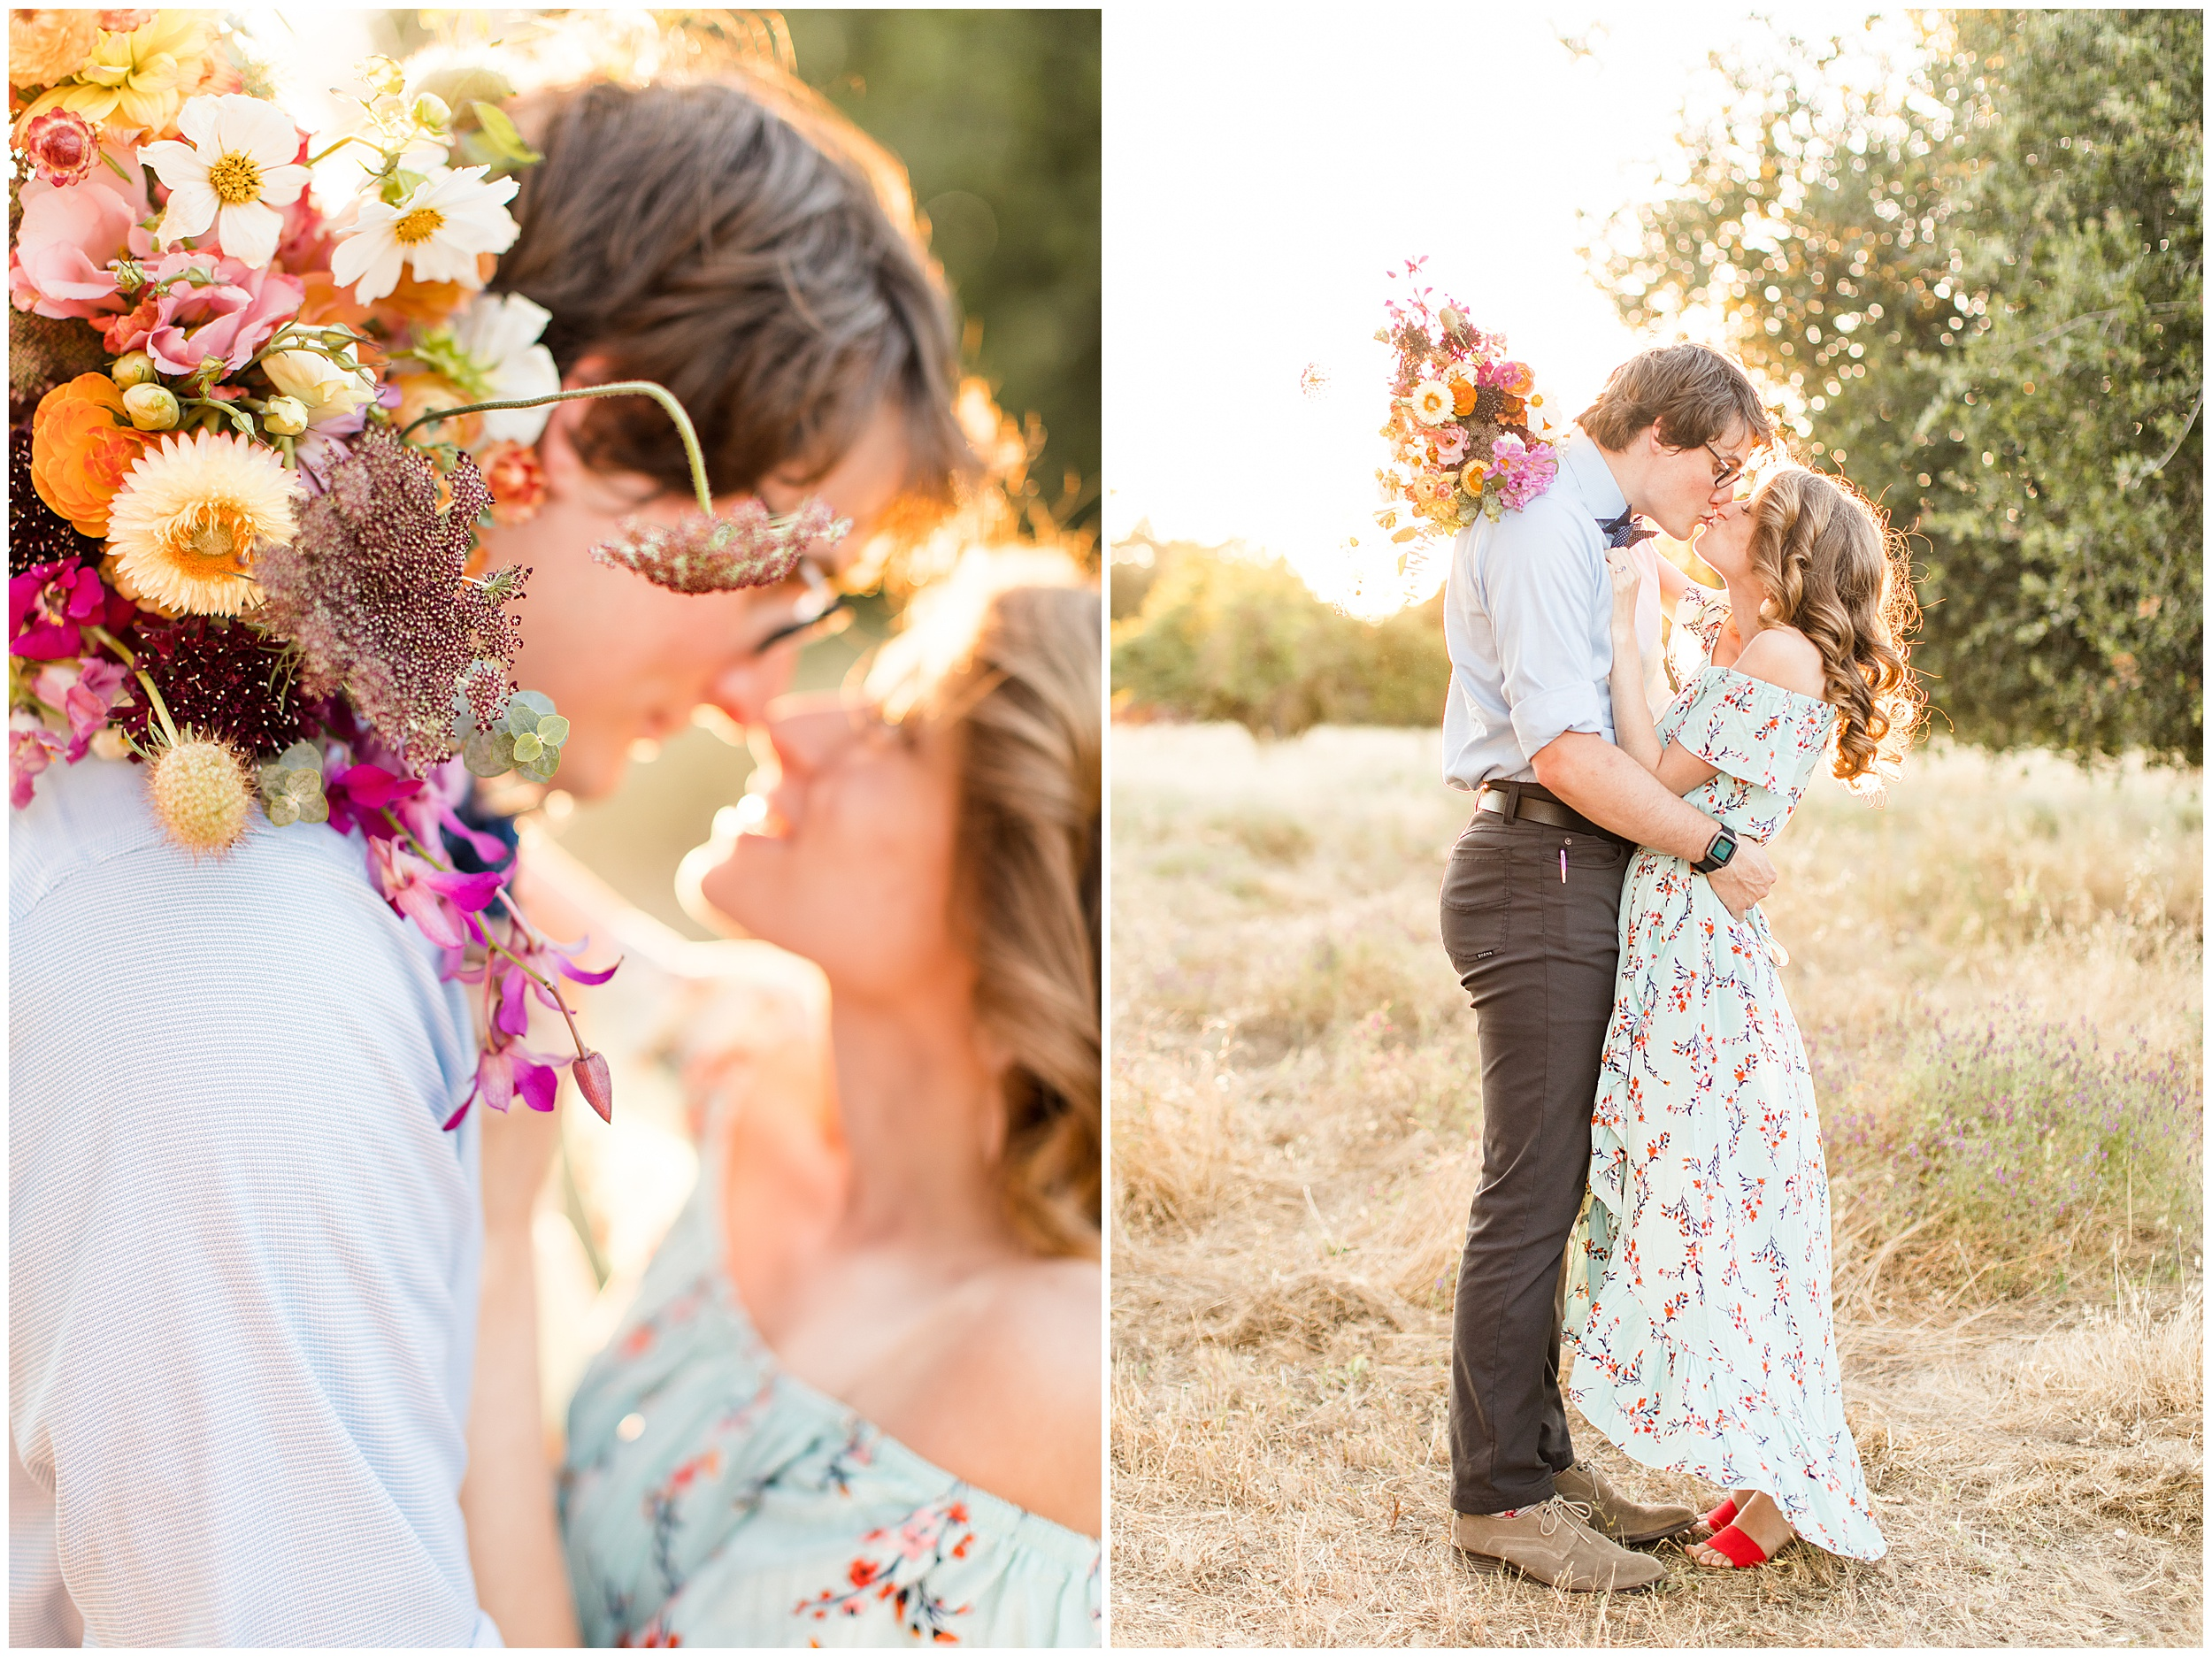 2019 bay area wedding photographer colorful florals flowers styled engagement session Angela Sue Photography_0024.jpg